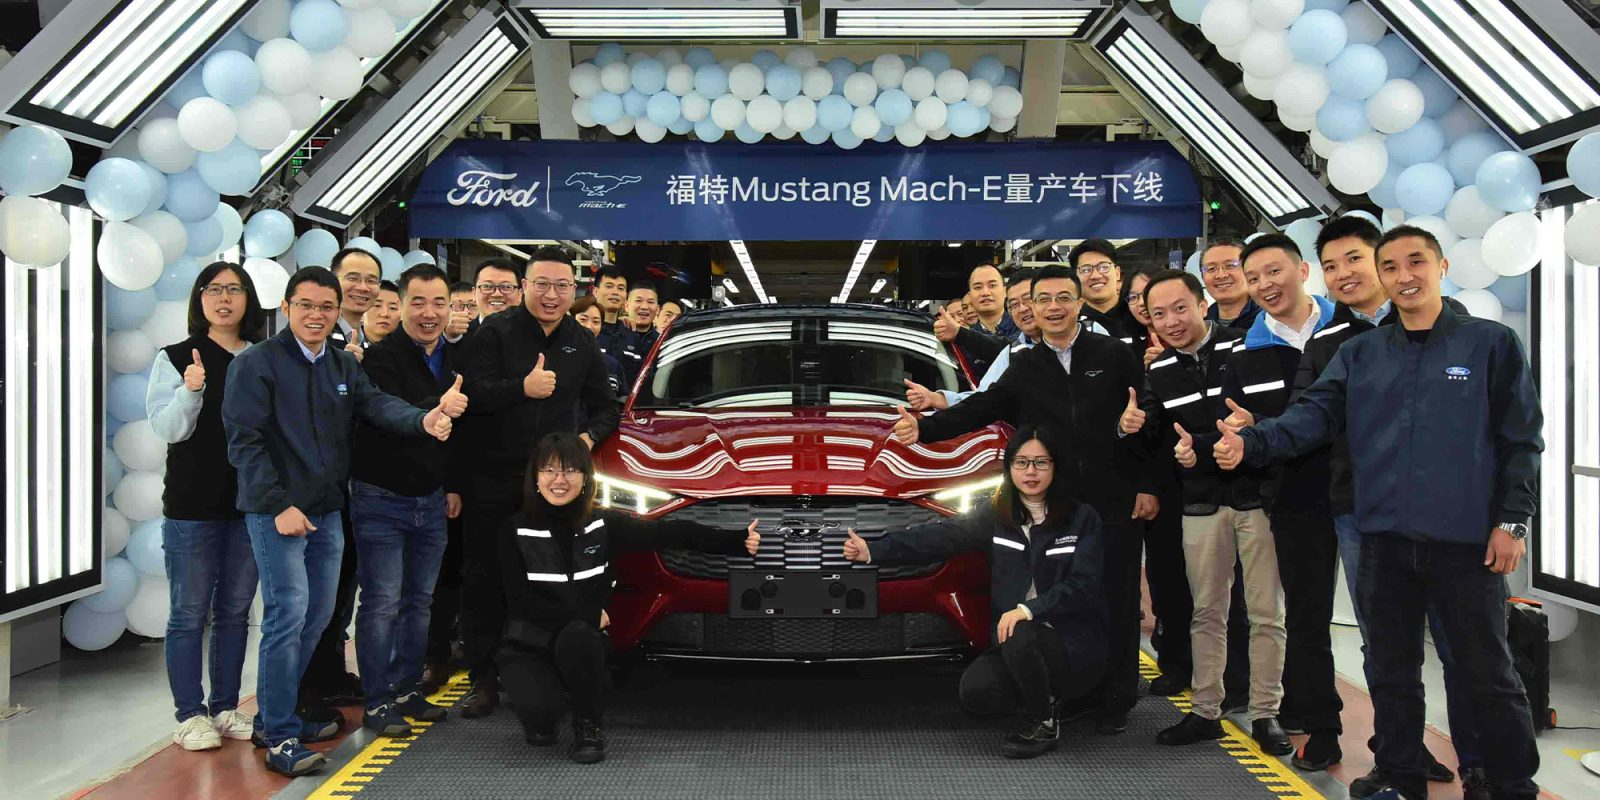 First Mustang Mach-E models built in China roll off assembly line